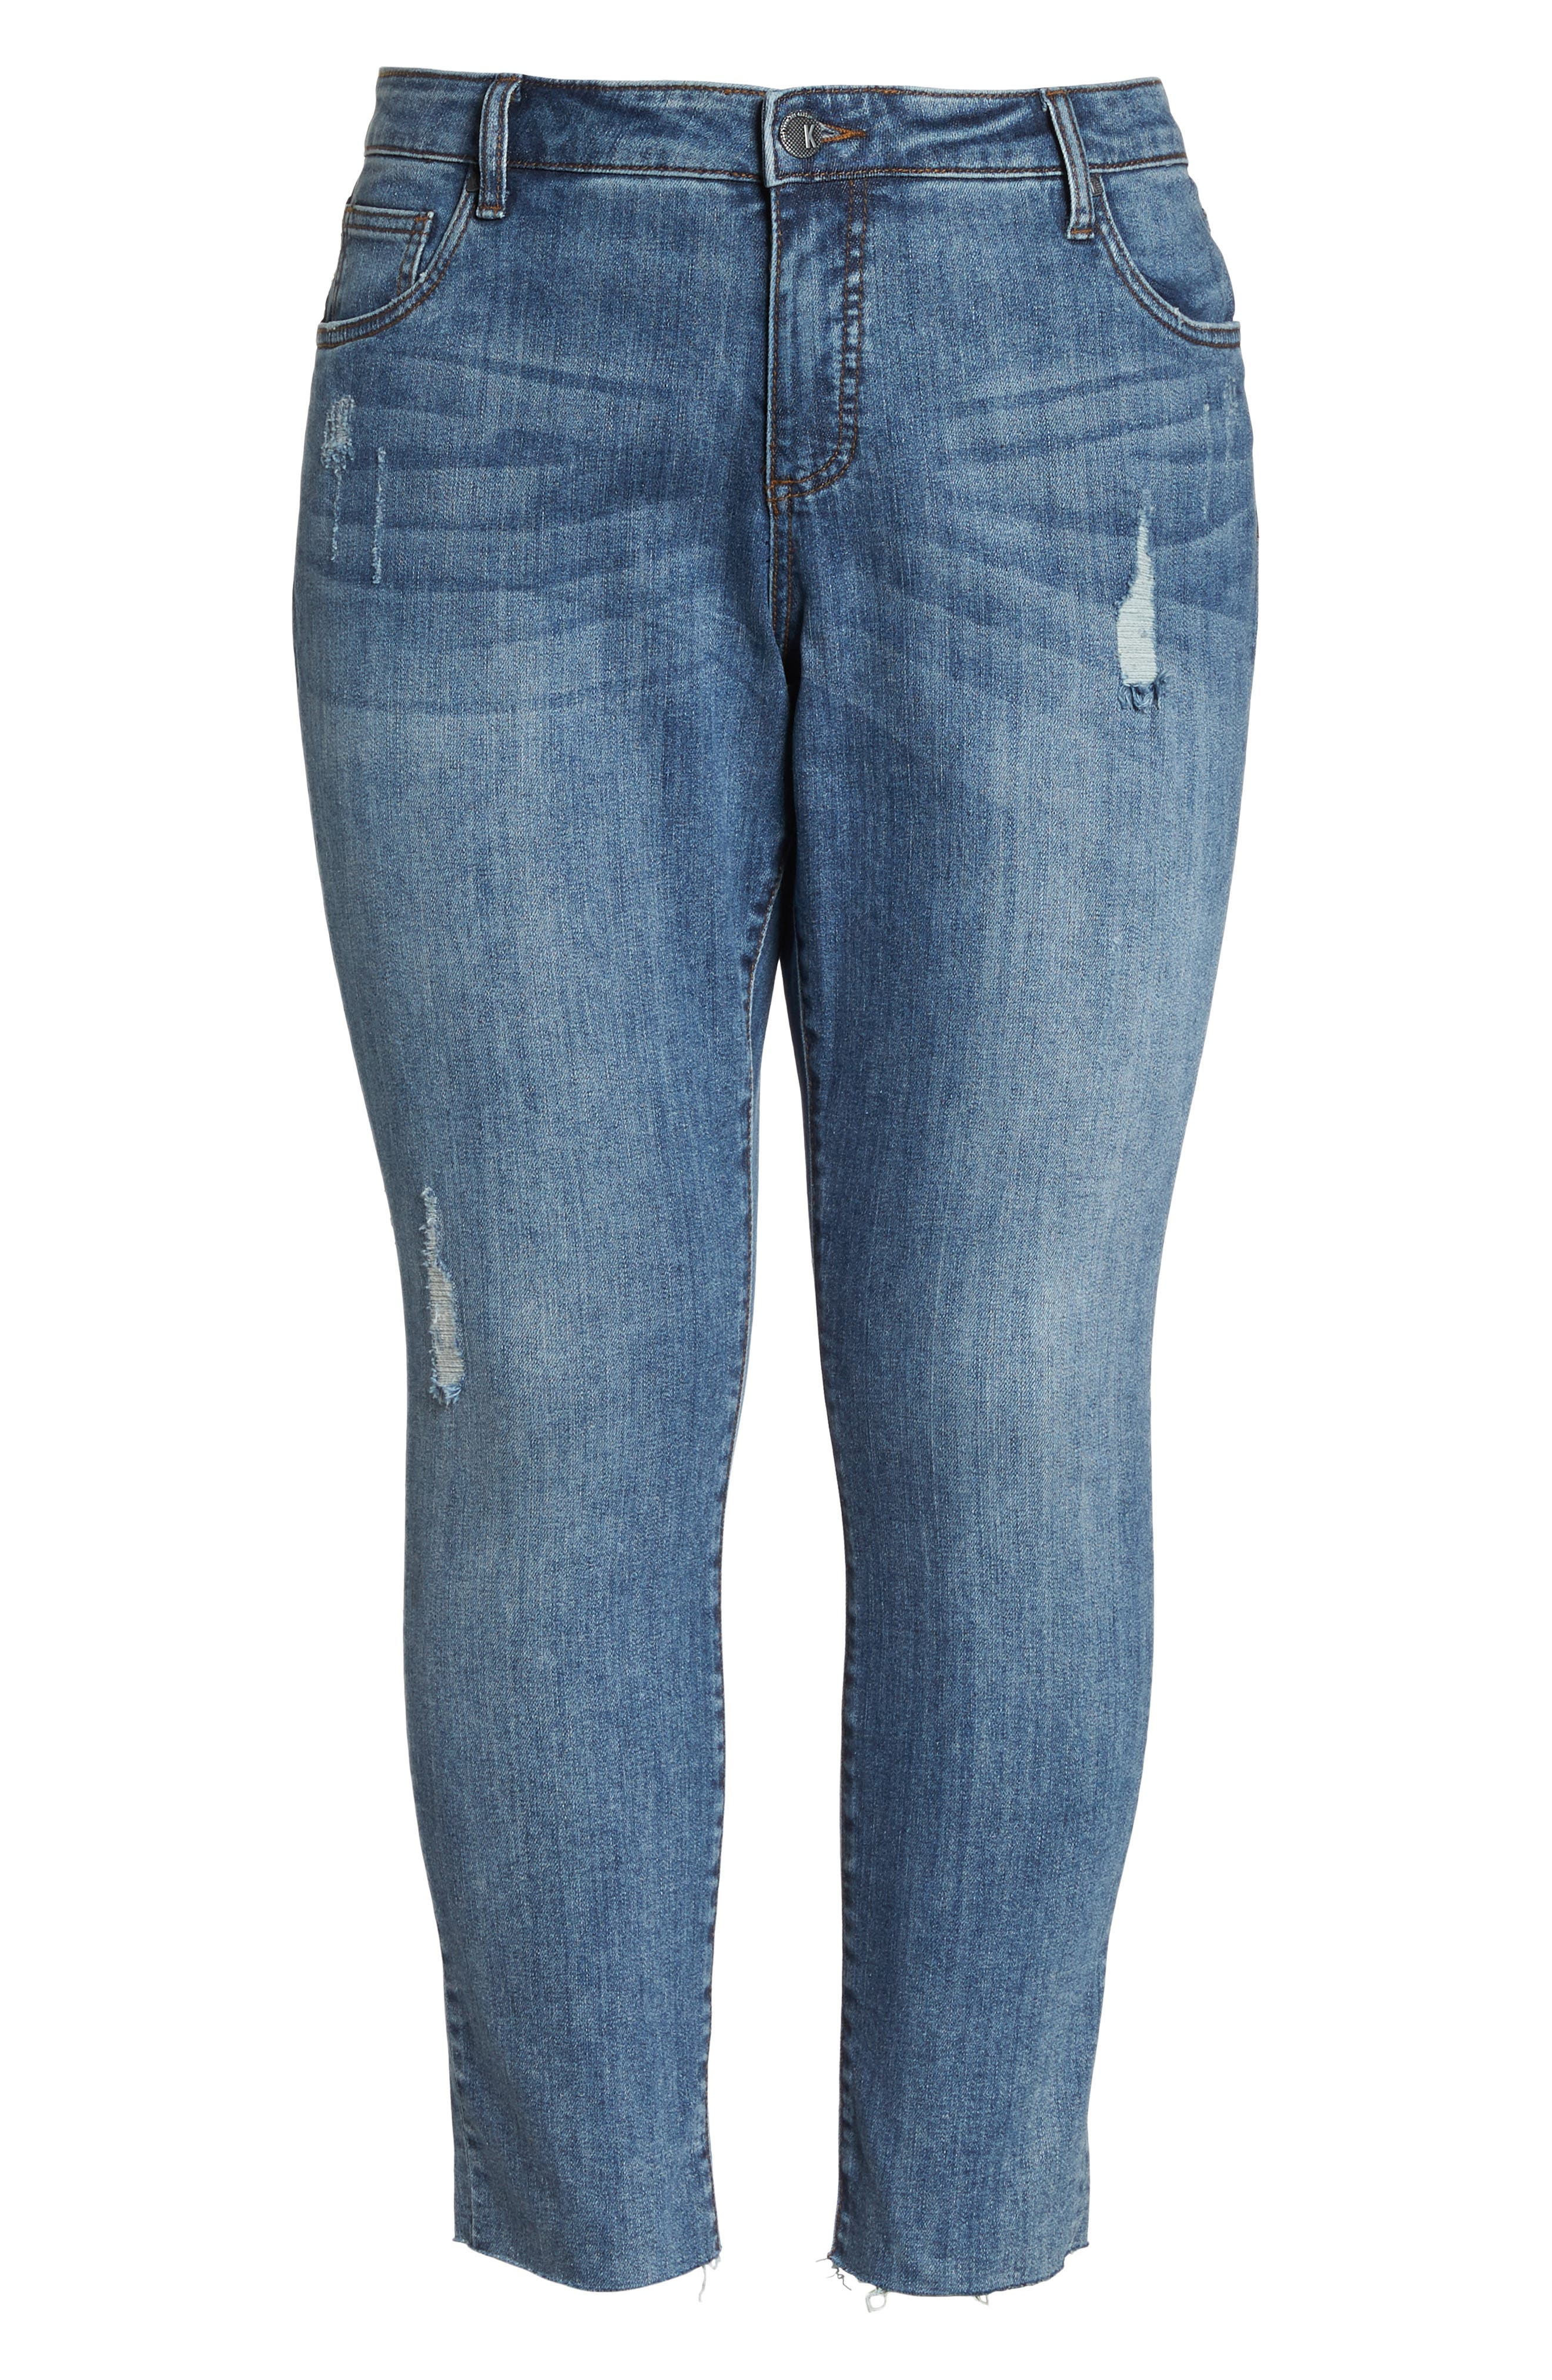 Reese Distressed Ankle Straight Leg Jeans,                             Alternate thumbnail 7, color,                             Appointed